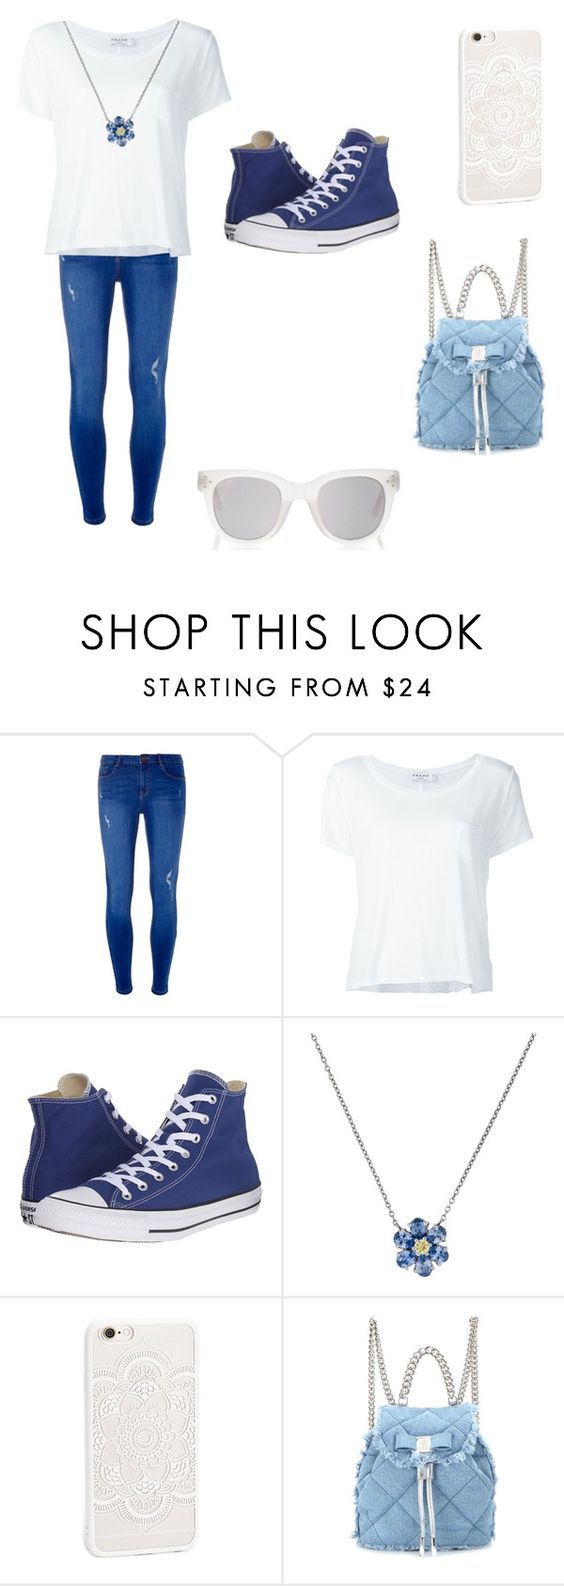 """""""Blue and White"""" by sara-beatrice-lazar ❤ liked on Polyvore featuring Dorothy Perkins, Frame Denim, Converse, Tiffany & Co., JFR, Salvatore Ferragamo and Spektre"""